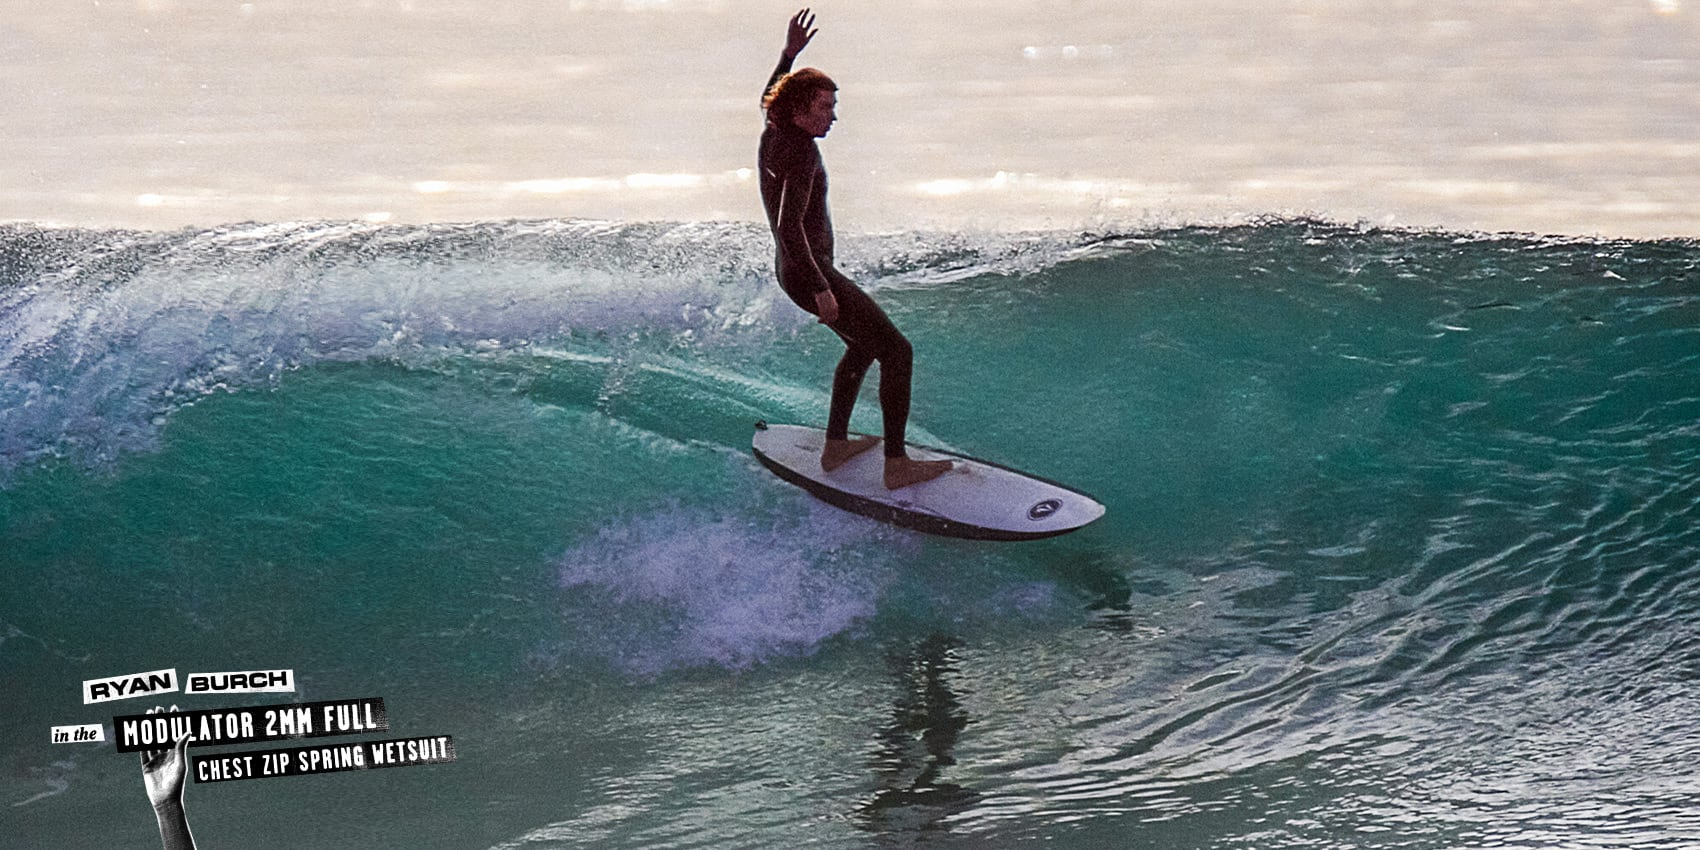 ryan burch surfing wave style in the Modulator 2mm Full Chest Zip Spring Wetsuit